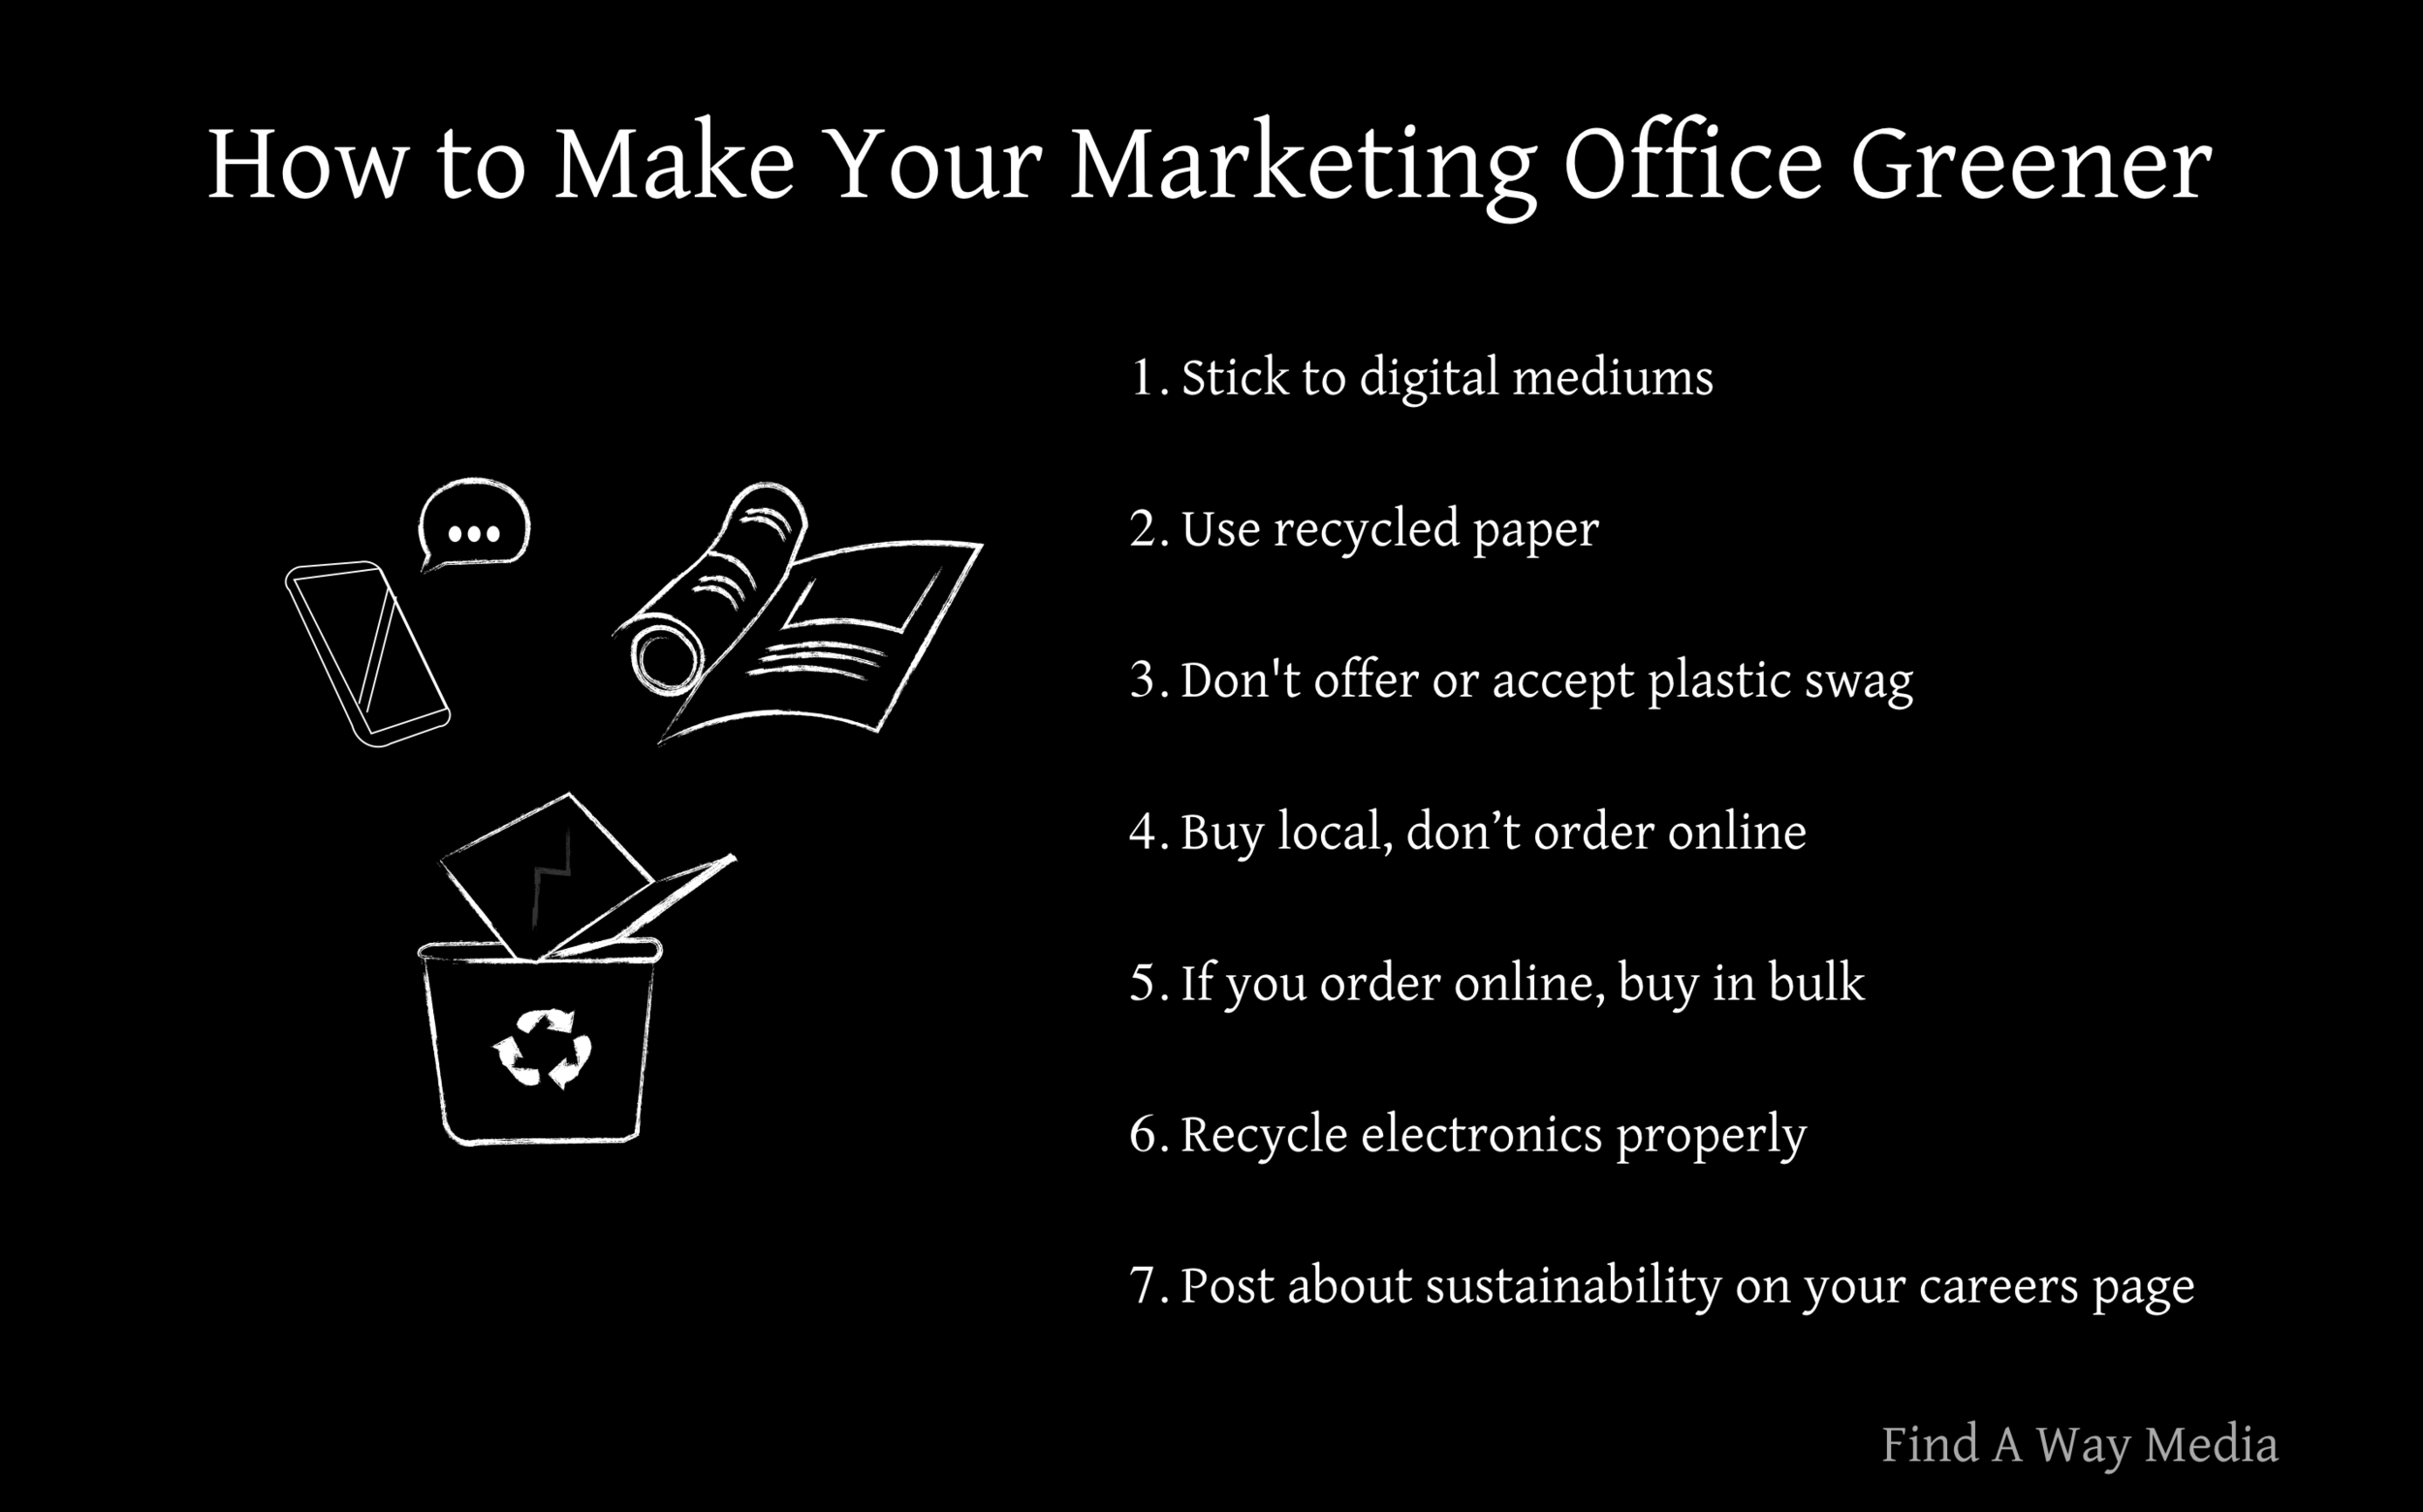 how to make your marketing department greener